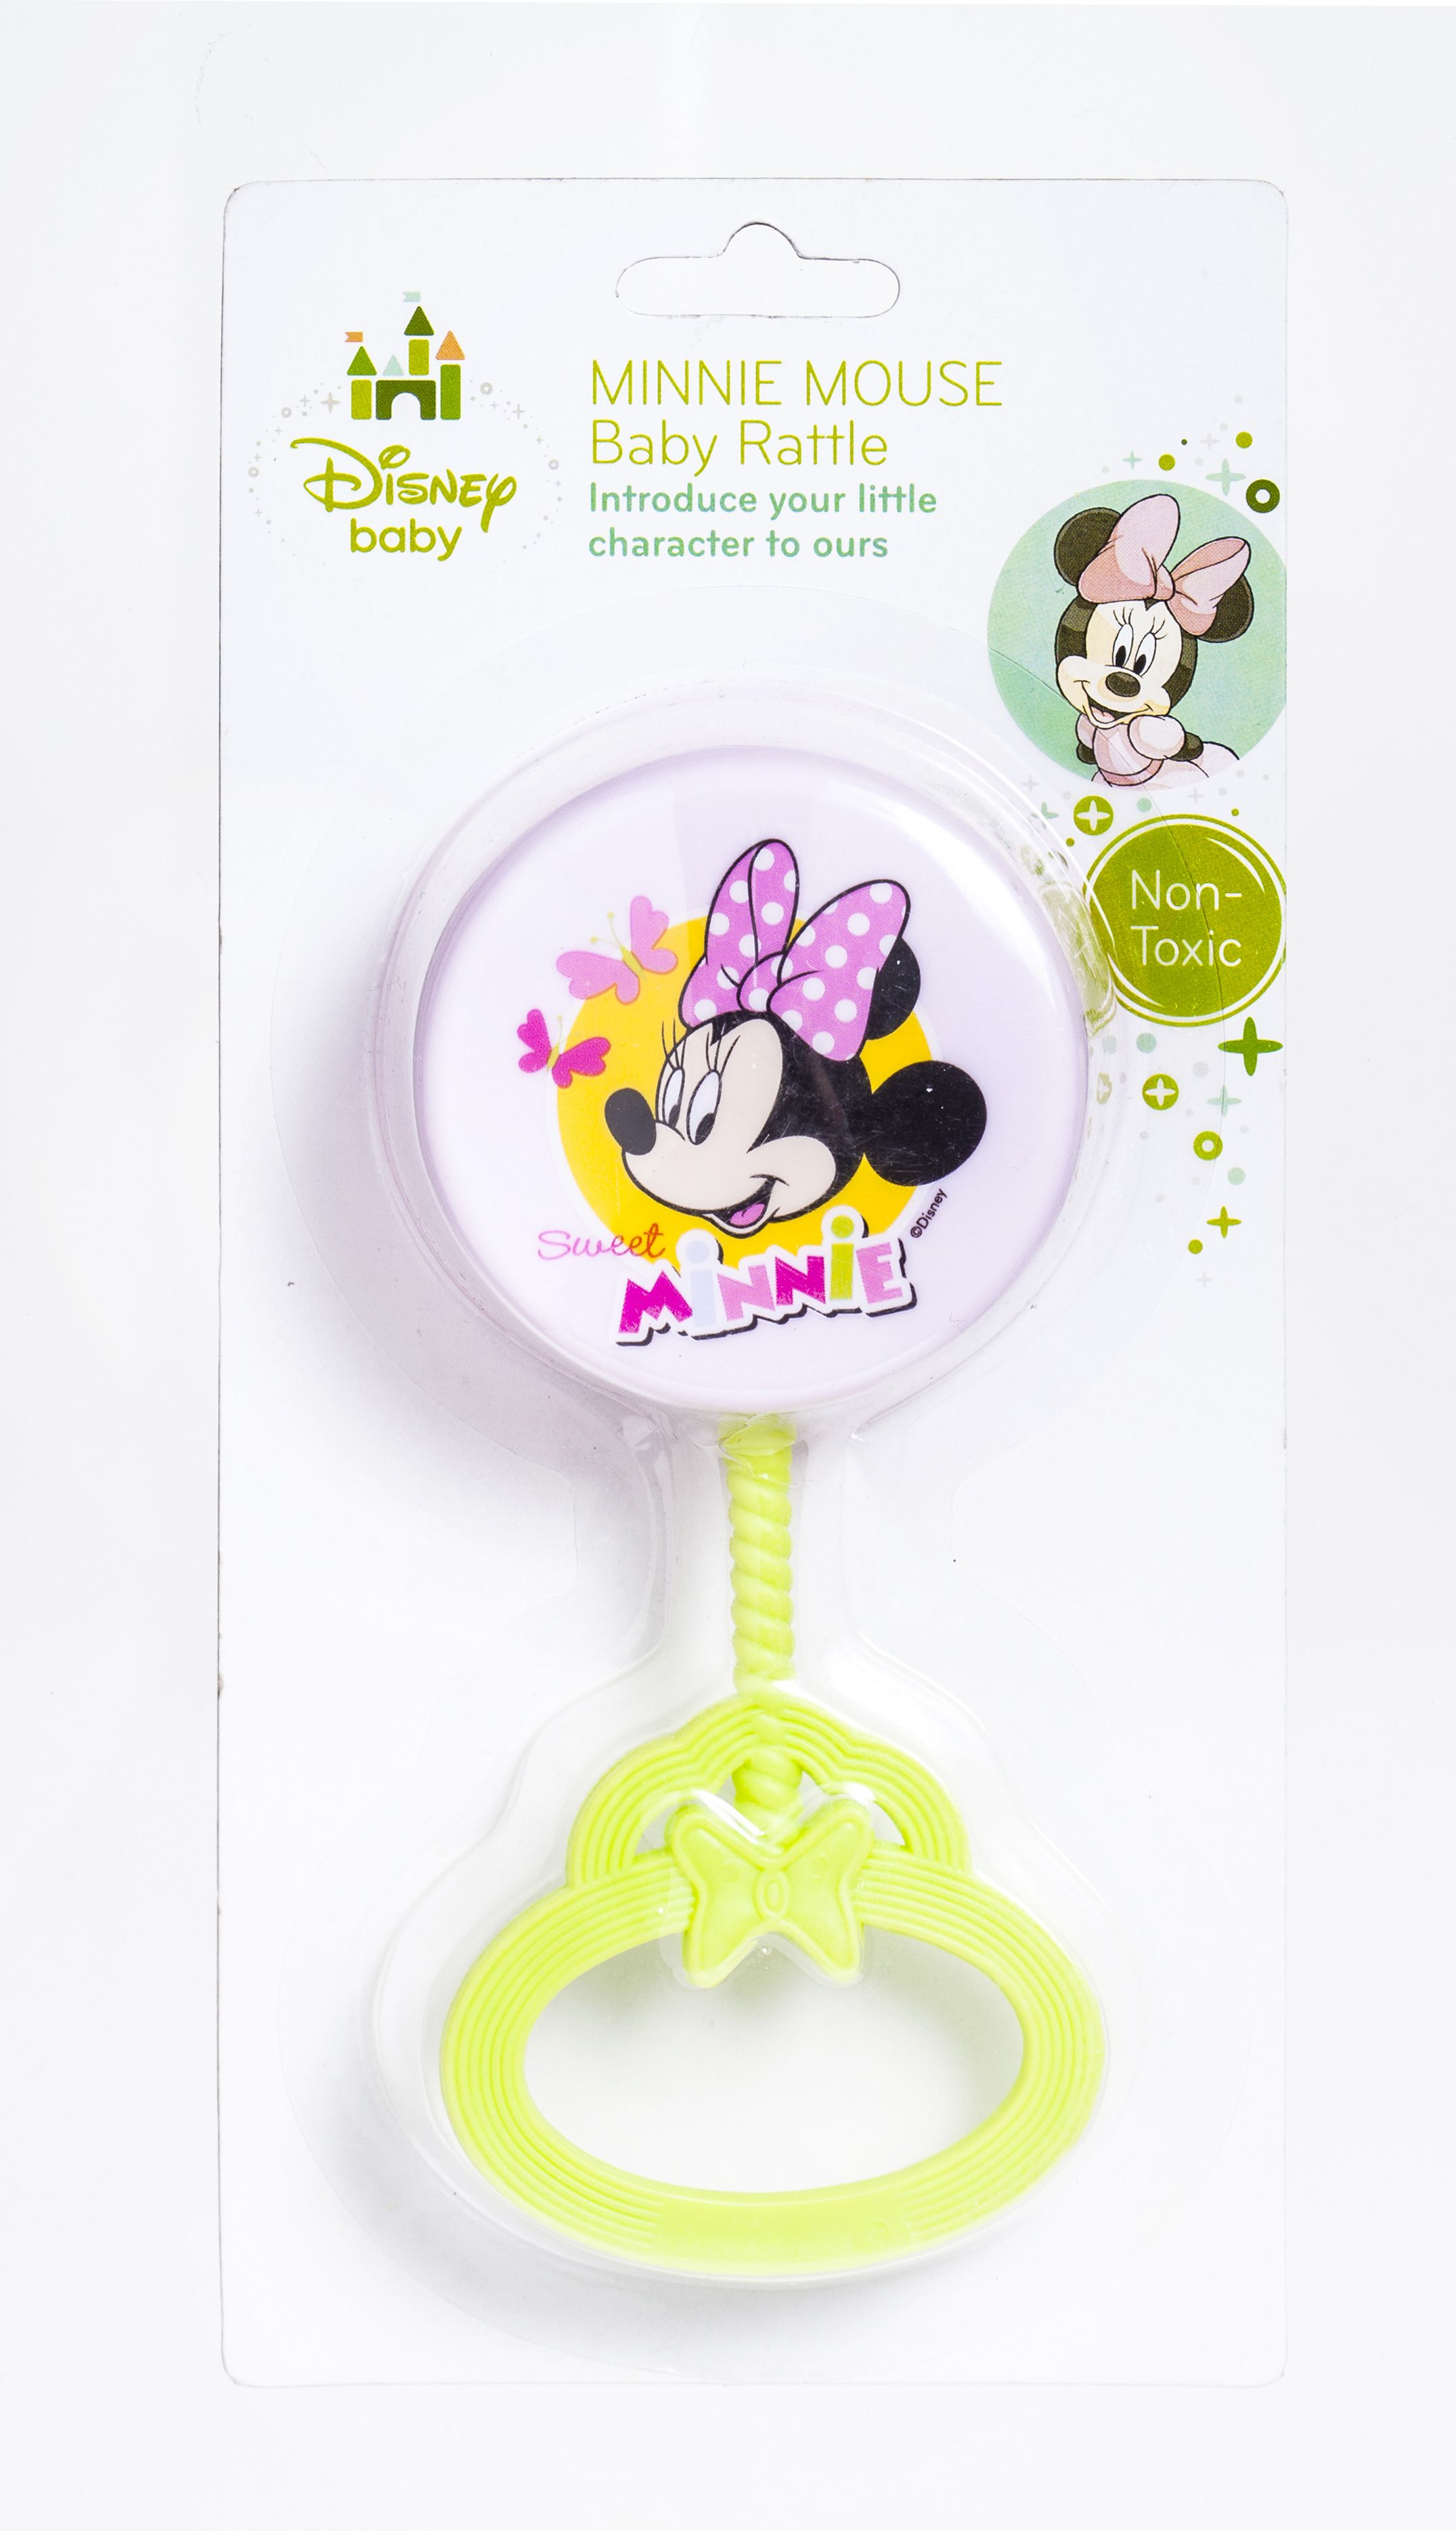 Discover Disney rattles and more for your baby at your ...